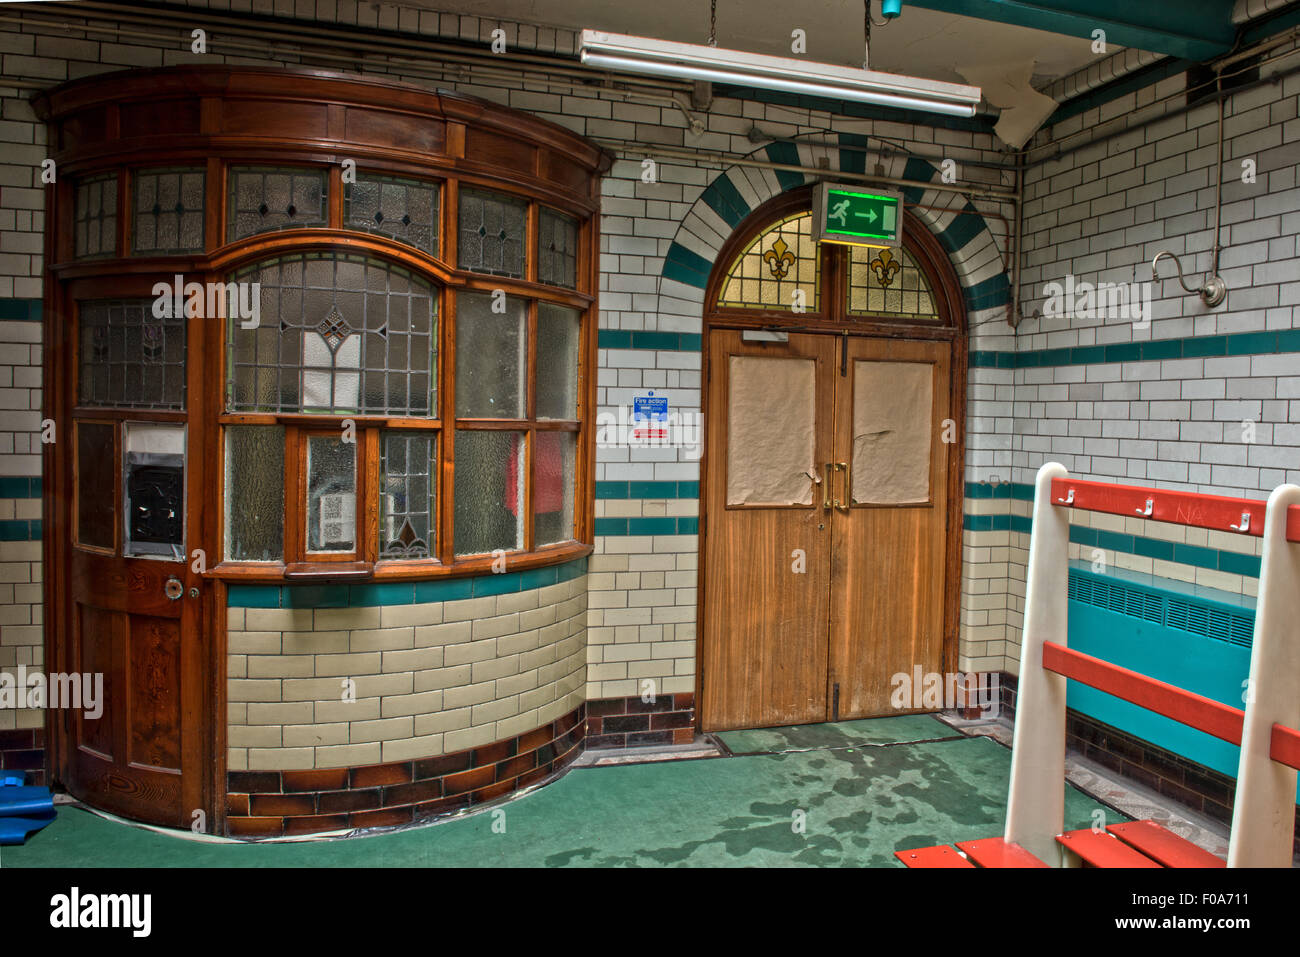 Well preserved slipper baths within Moseley Road Swimming Baths, Balsall Heath, Birmingham, UK - Stock Image